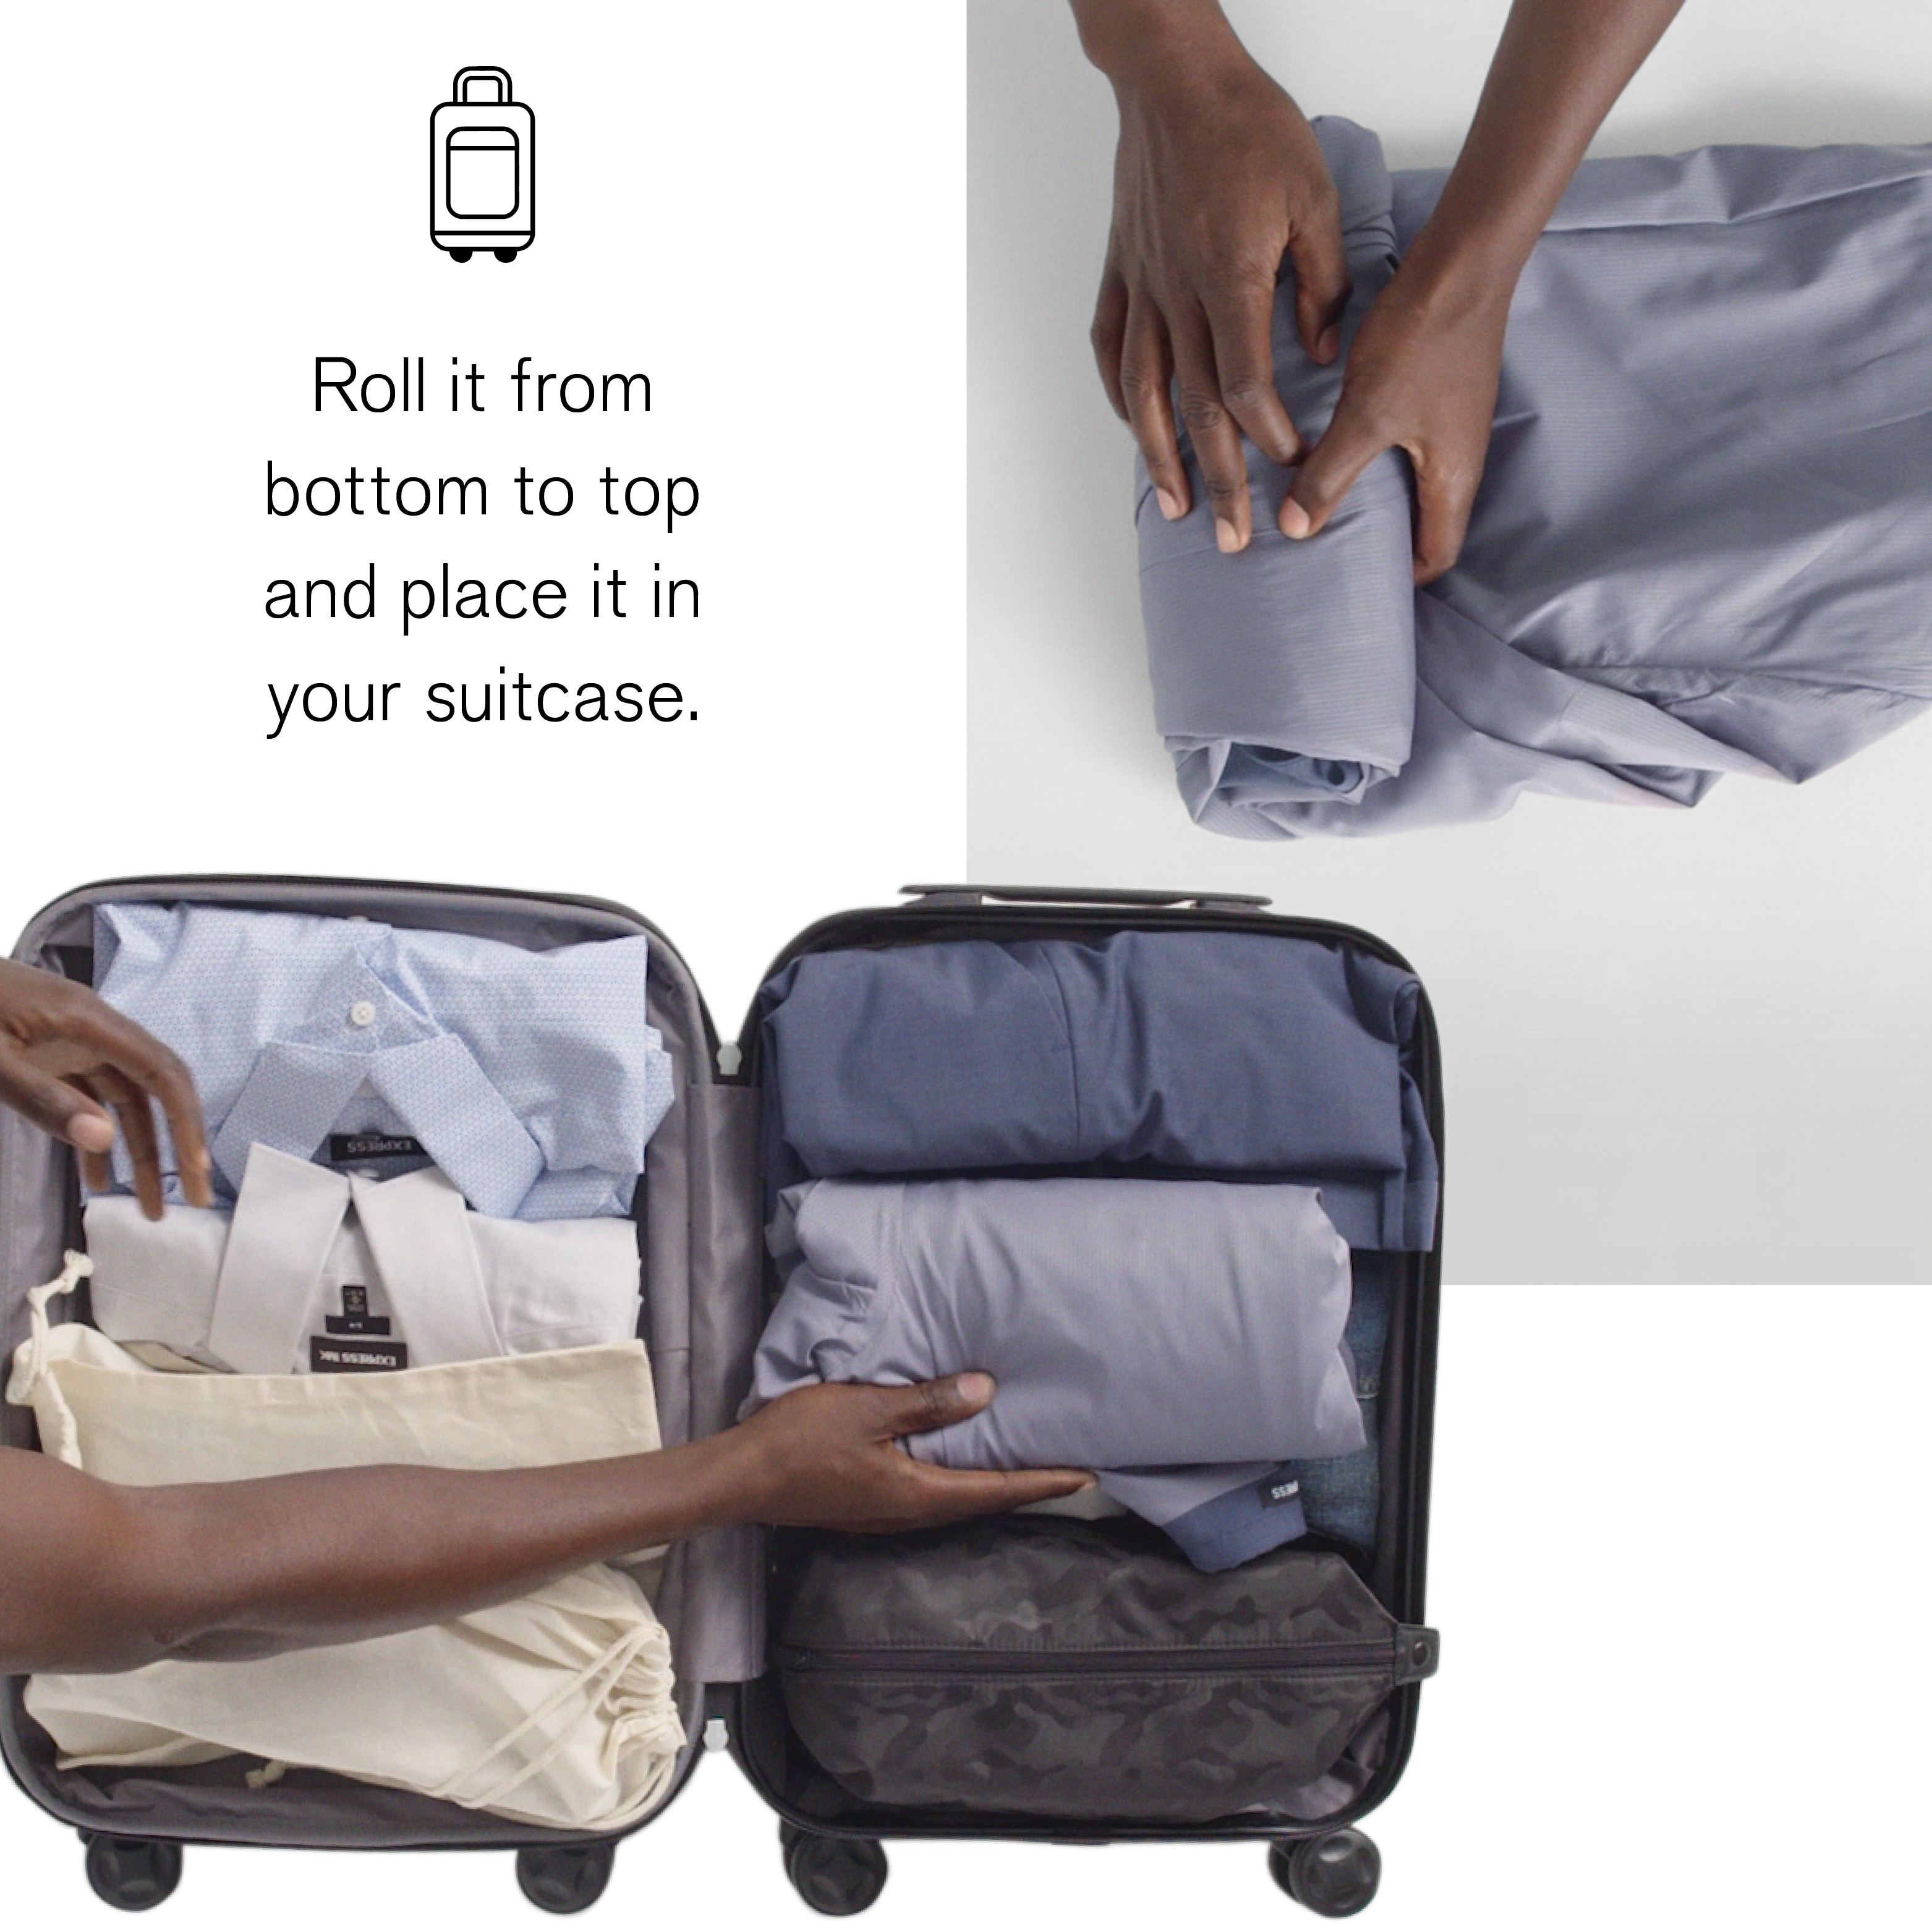 roll-it-from-bottom-to-top-and-place-it-in-your-suitcase